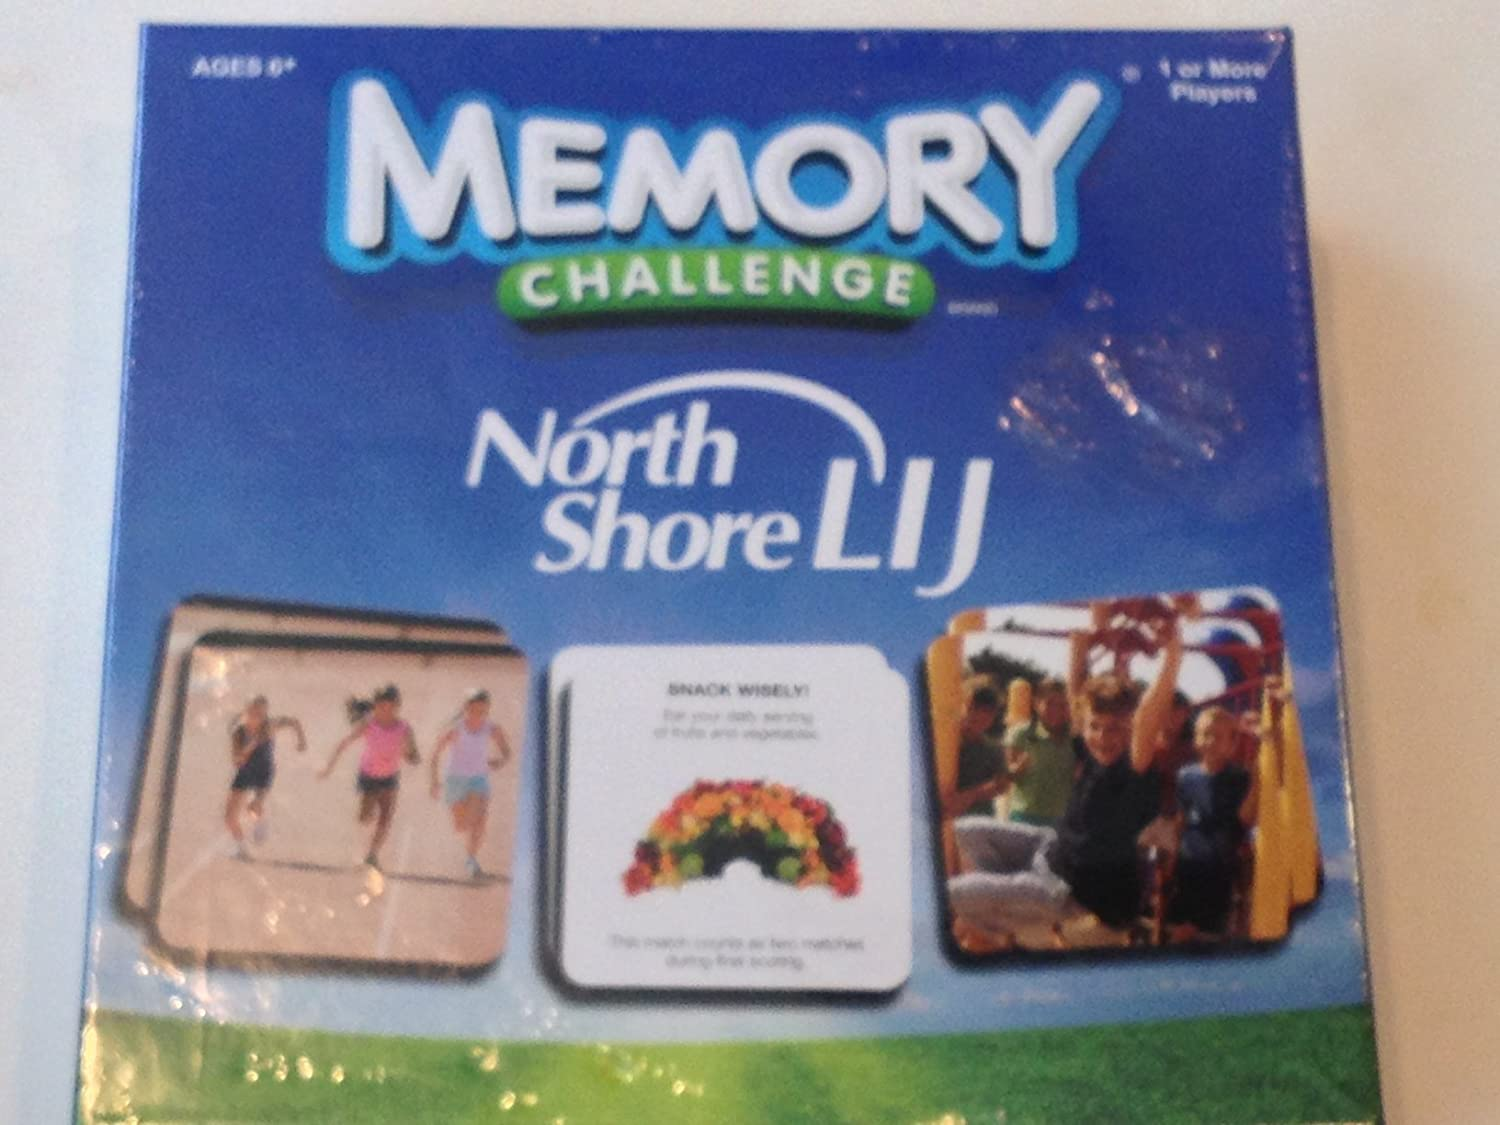 Memory Challenge Game North Shore LIJ Game